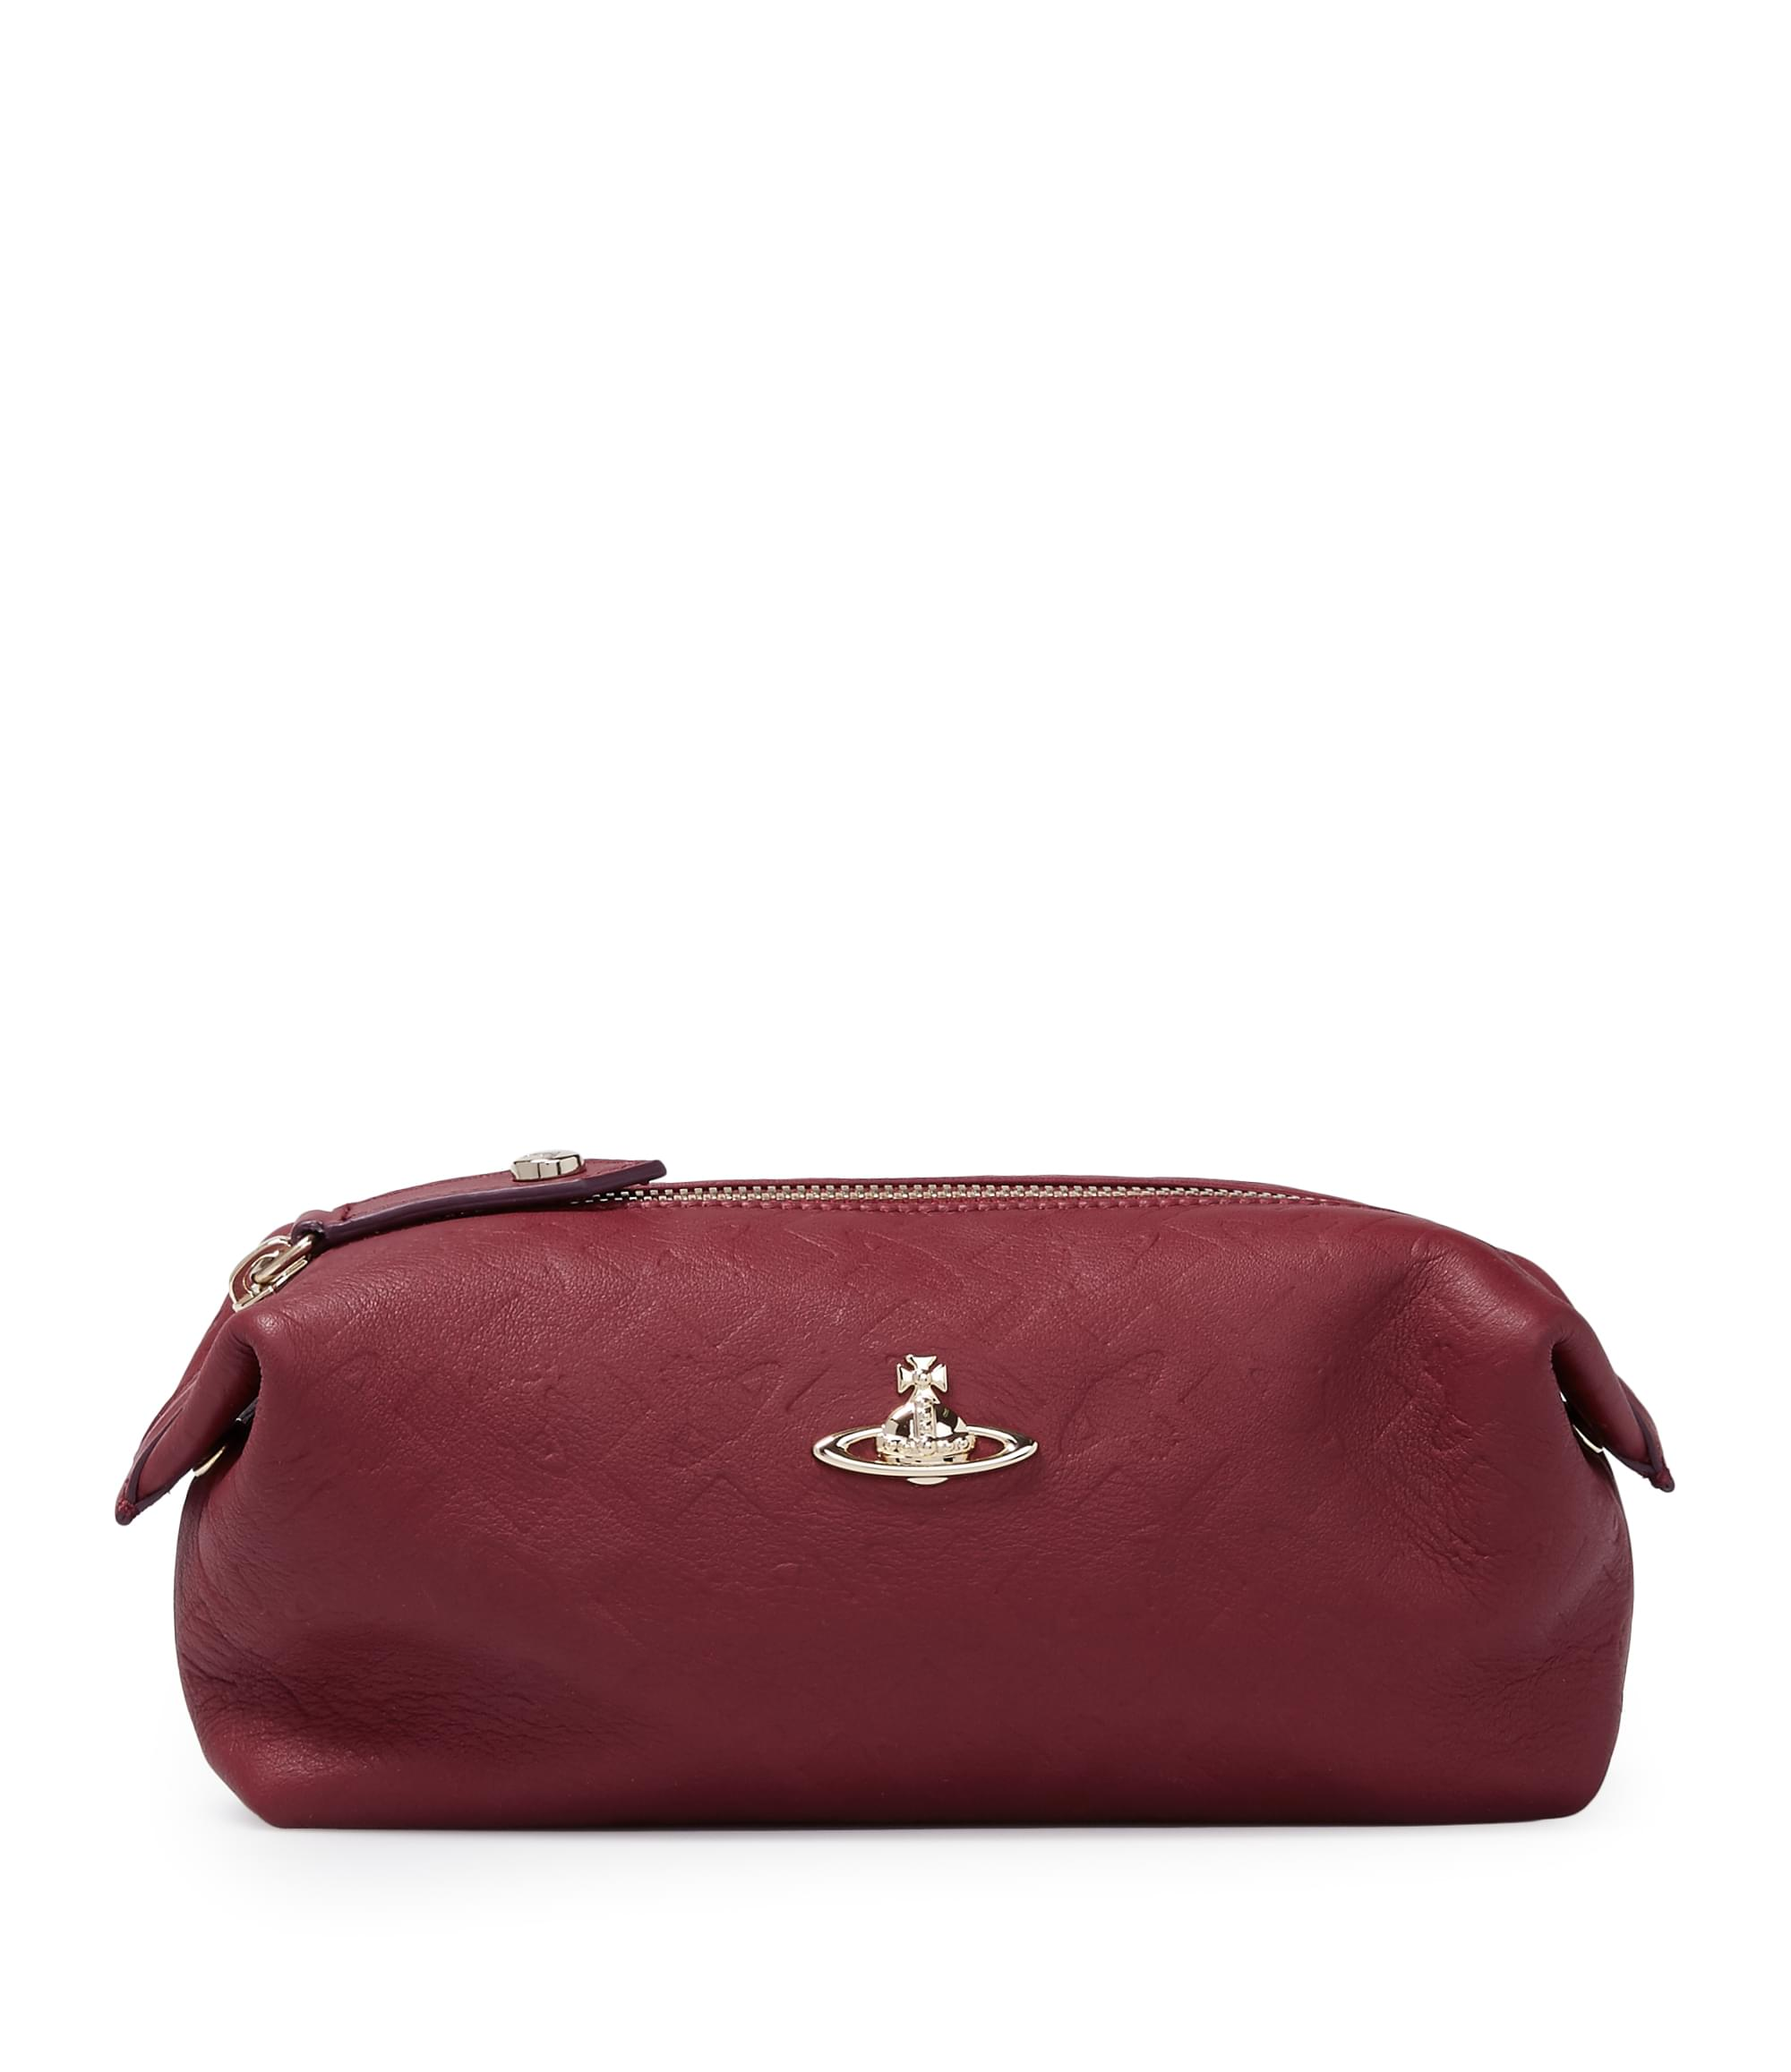 Vivienne Westwood Harrow Wash Bag 35101 Bordeaux